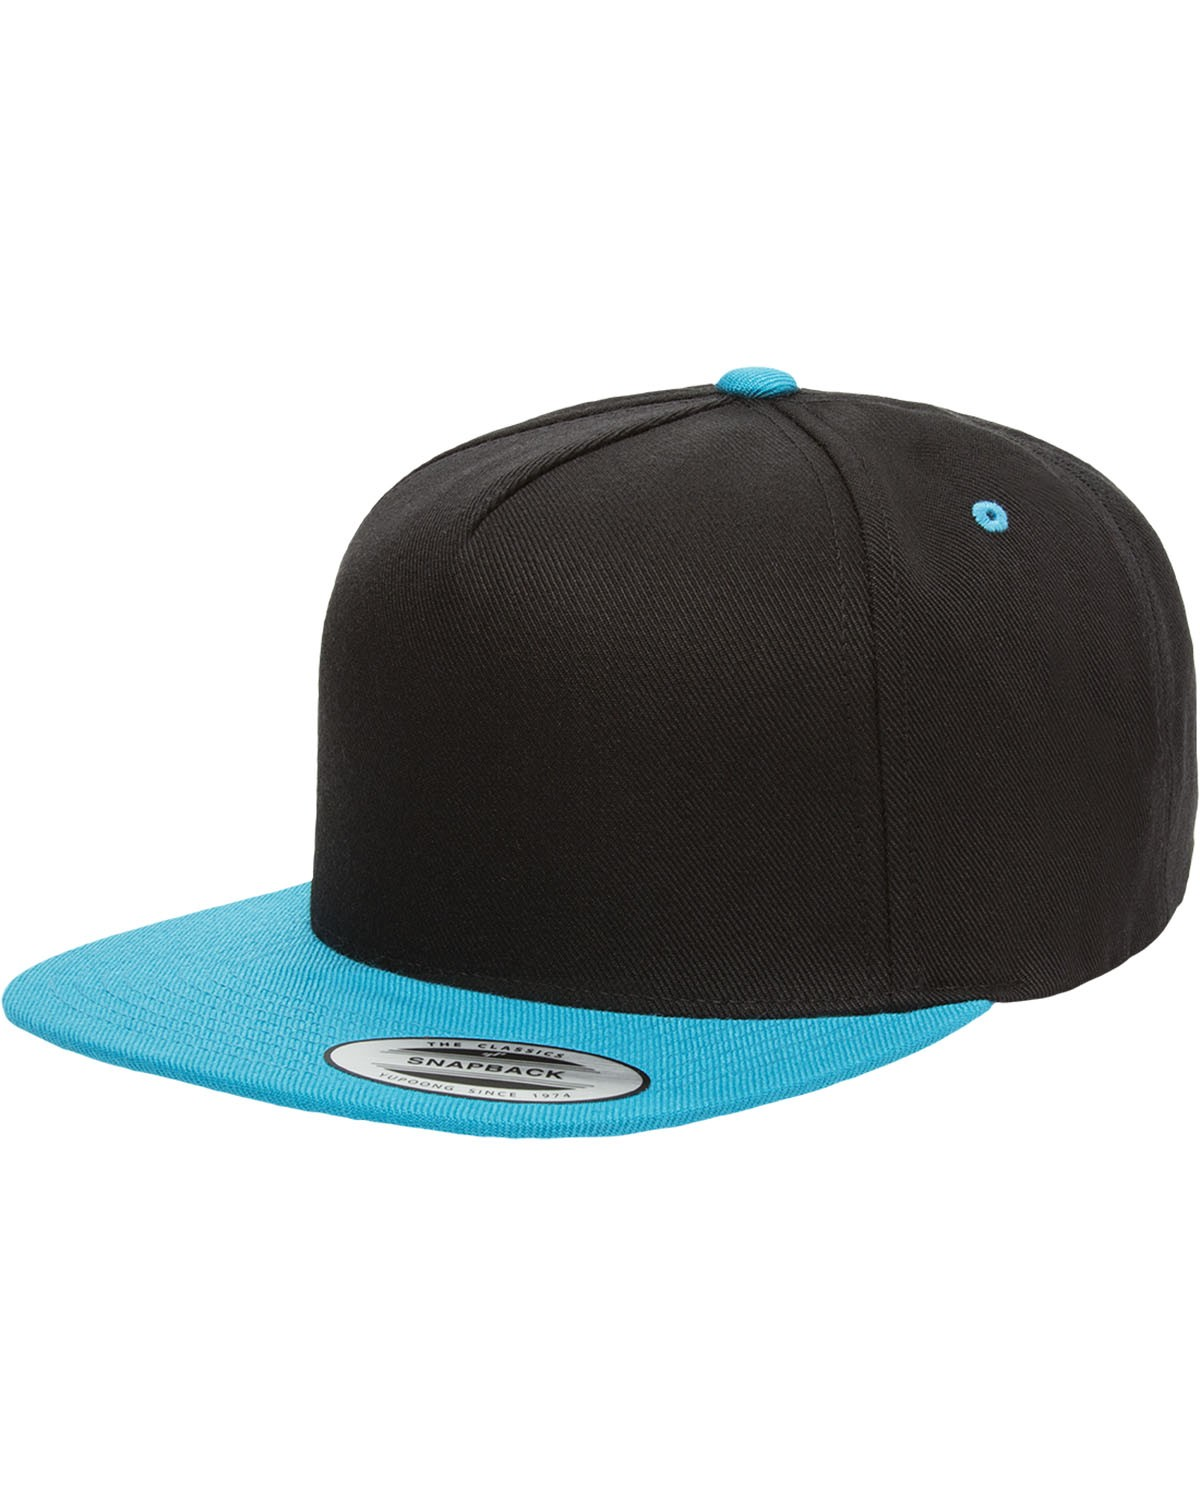 YP5089 Yupoong BLACK/TEAL